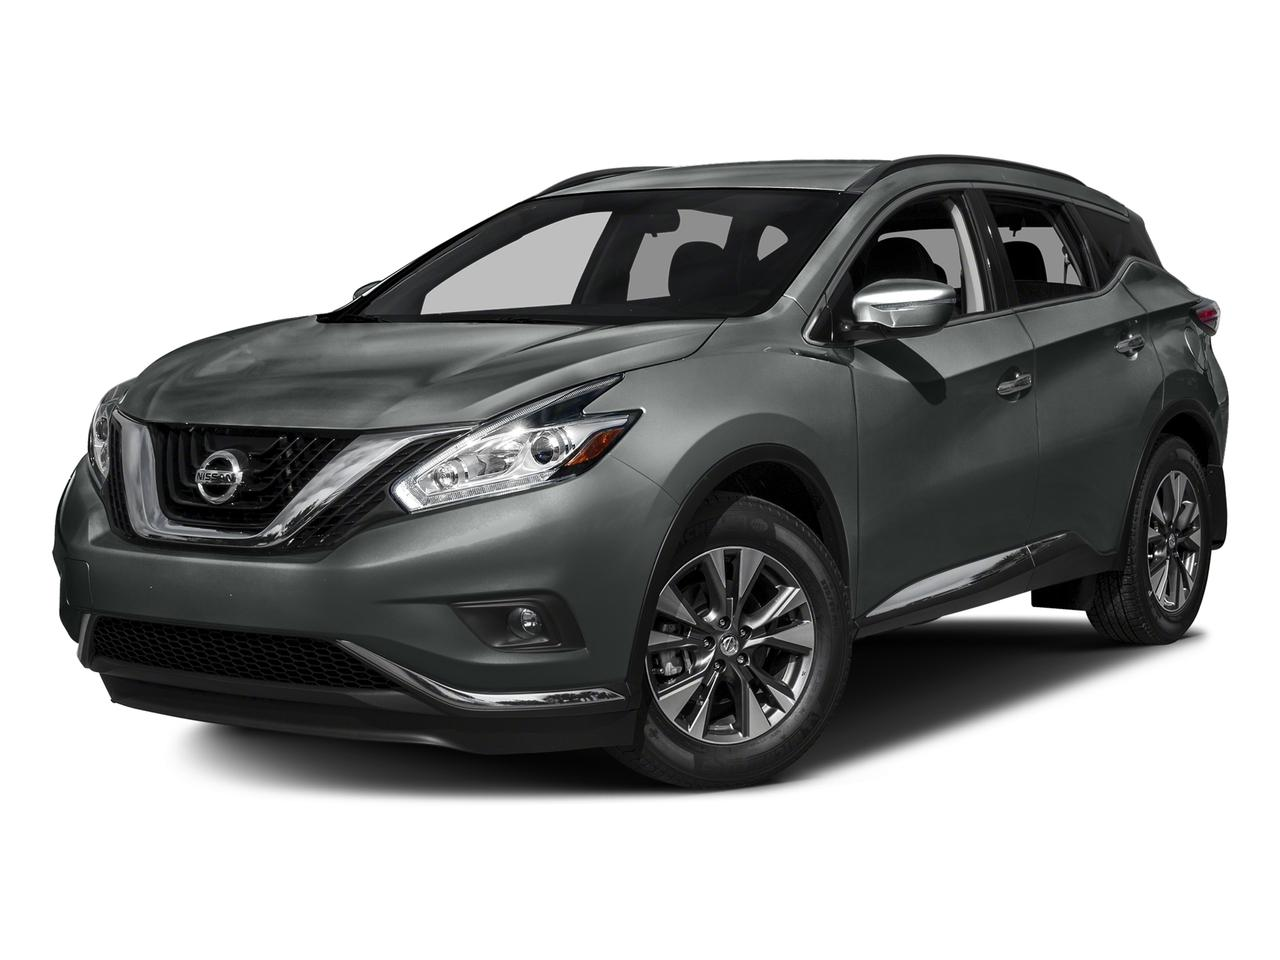 2017 Nissan Murano Vehicle Photo in Wendell, NC 27591